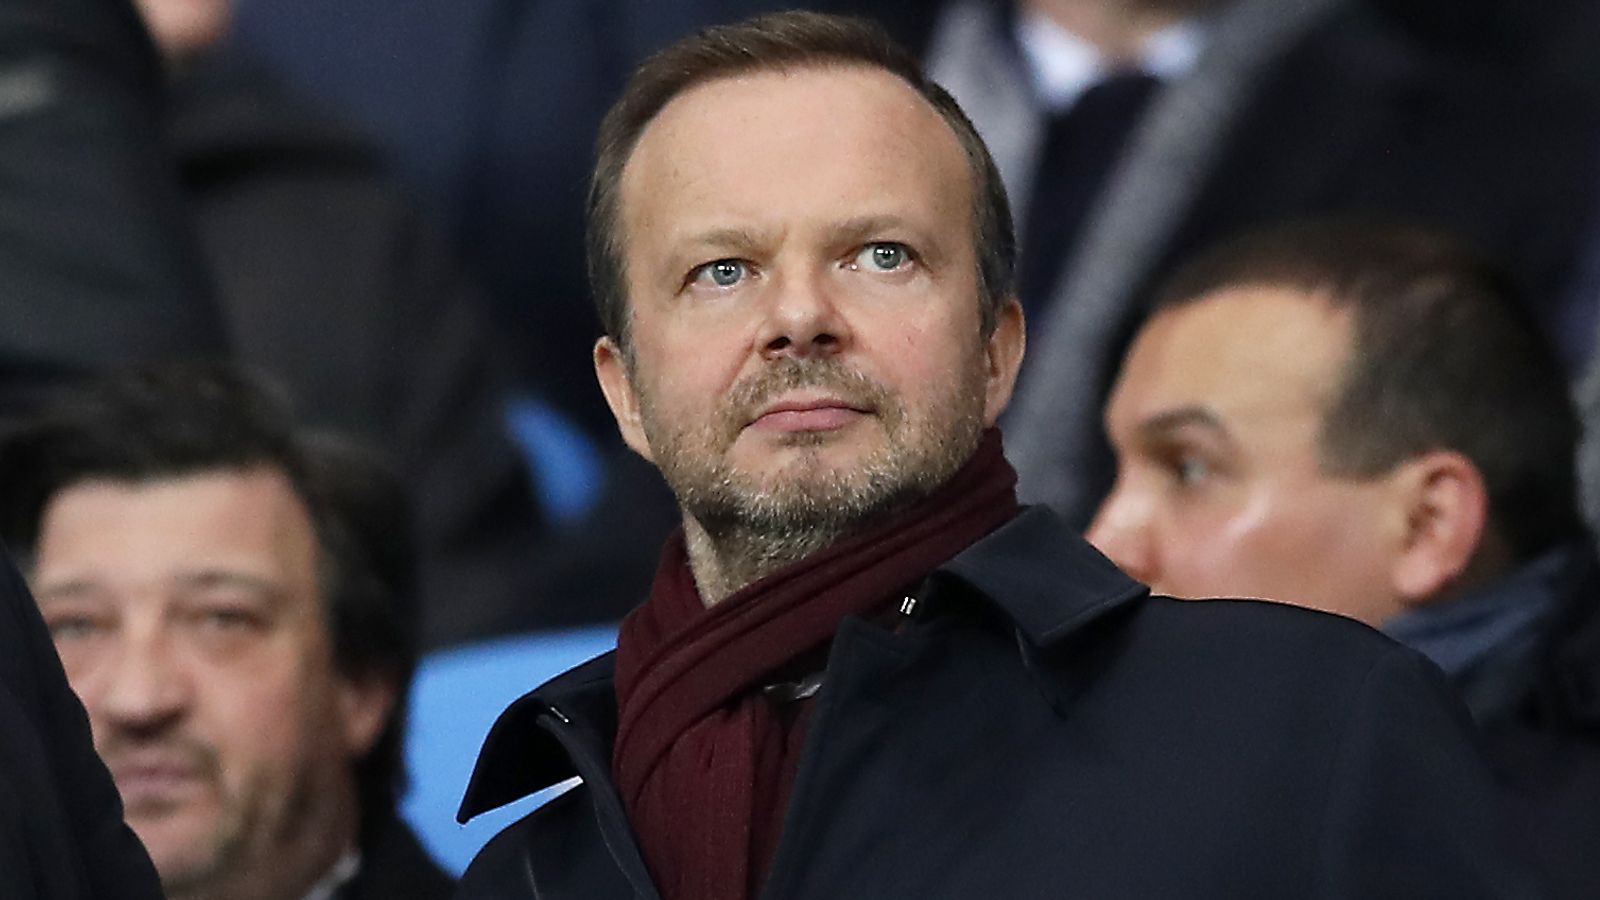 Manchester United financial results: Ed Woodward 'more confident than ever' as club announce loss of £36.9m